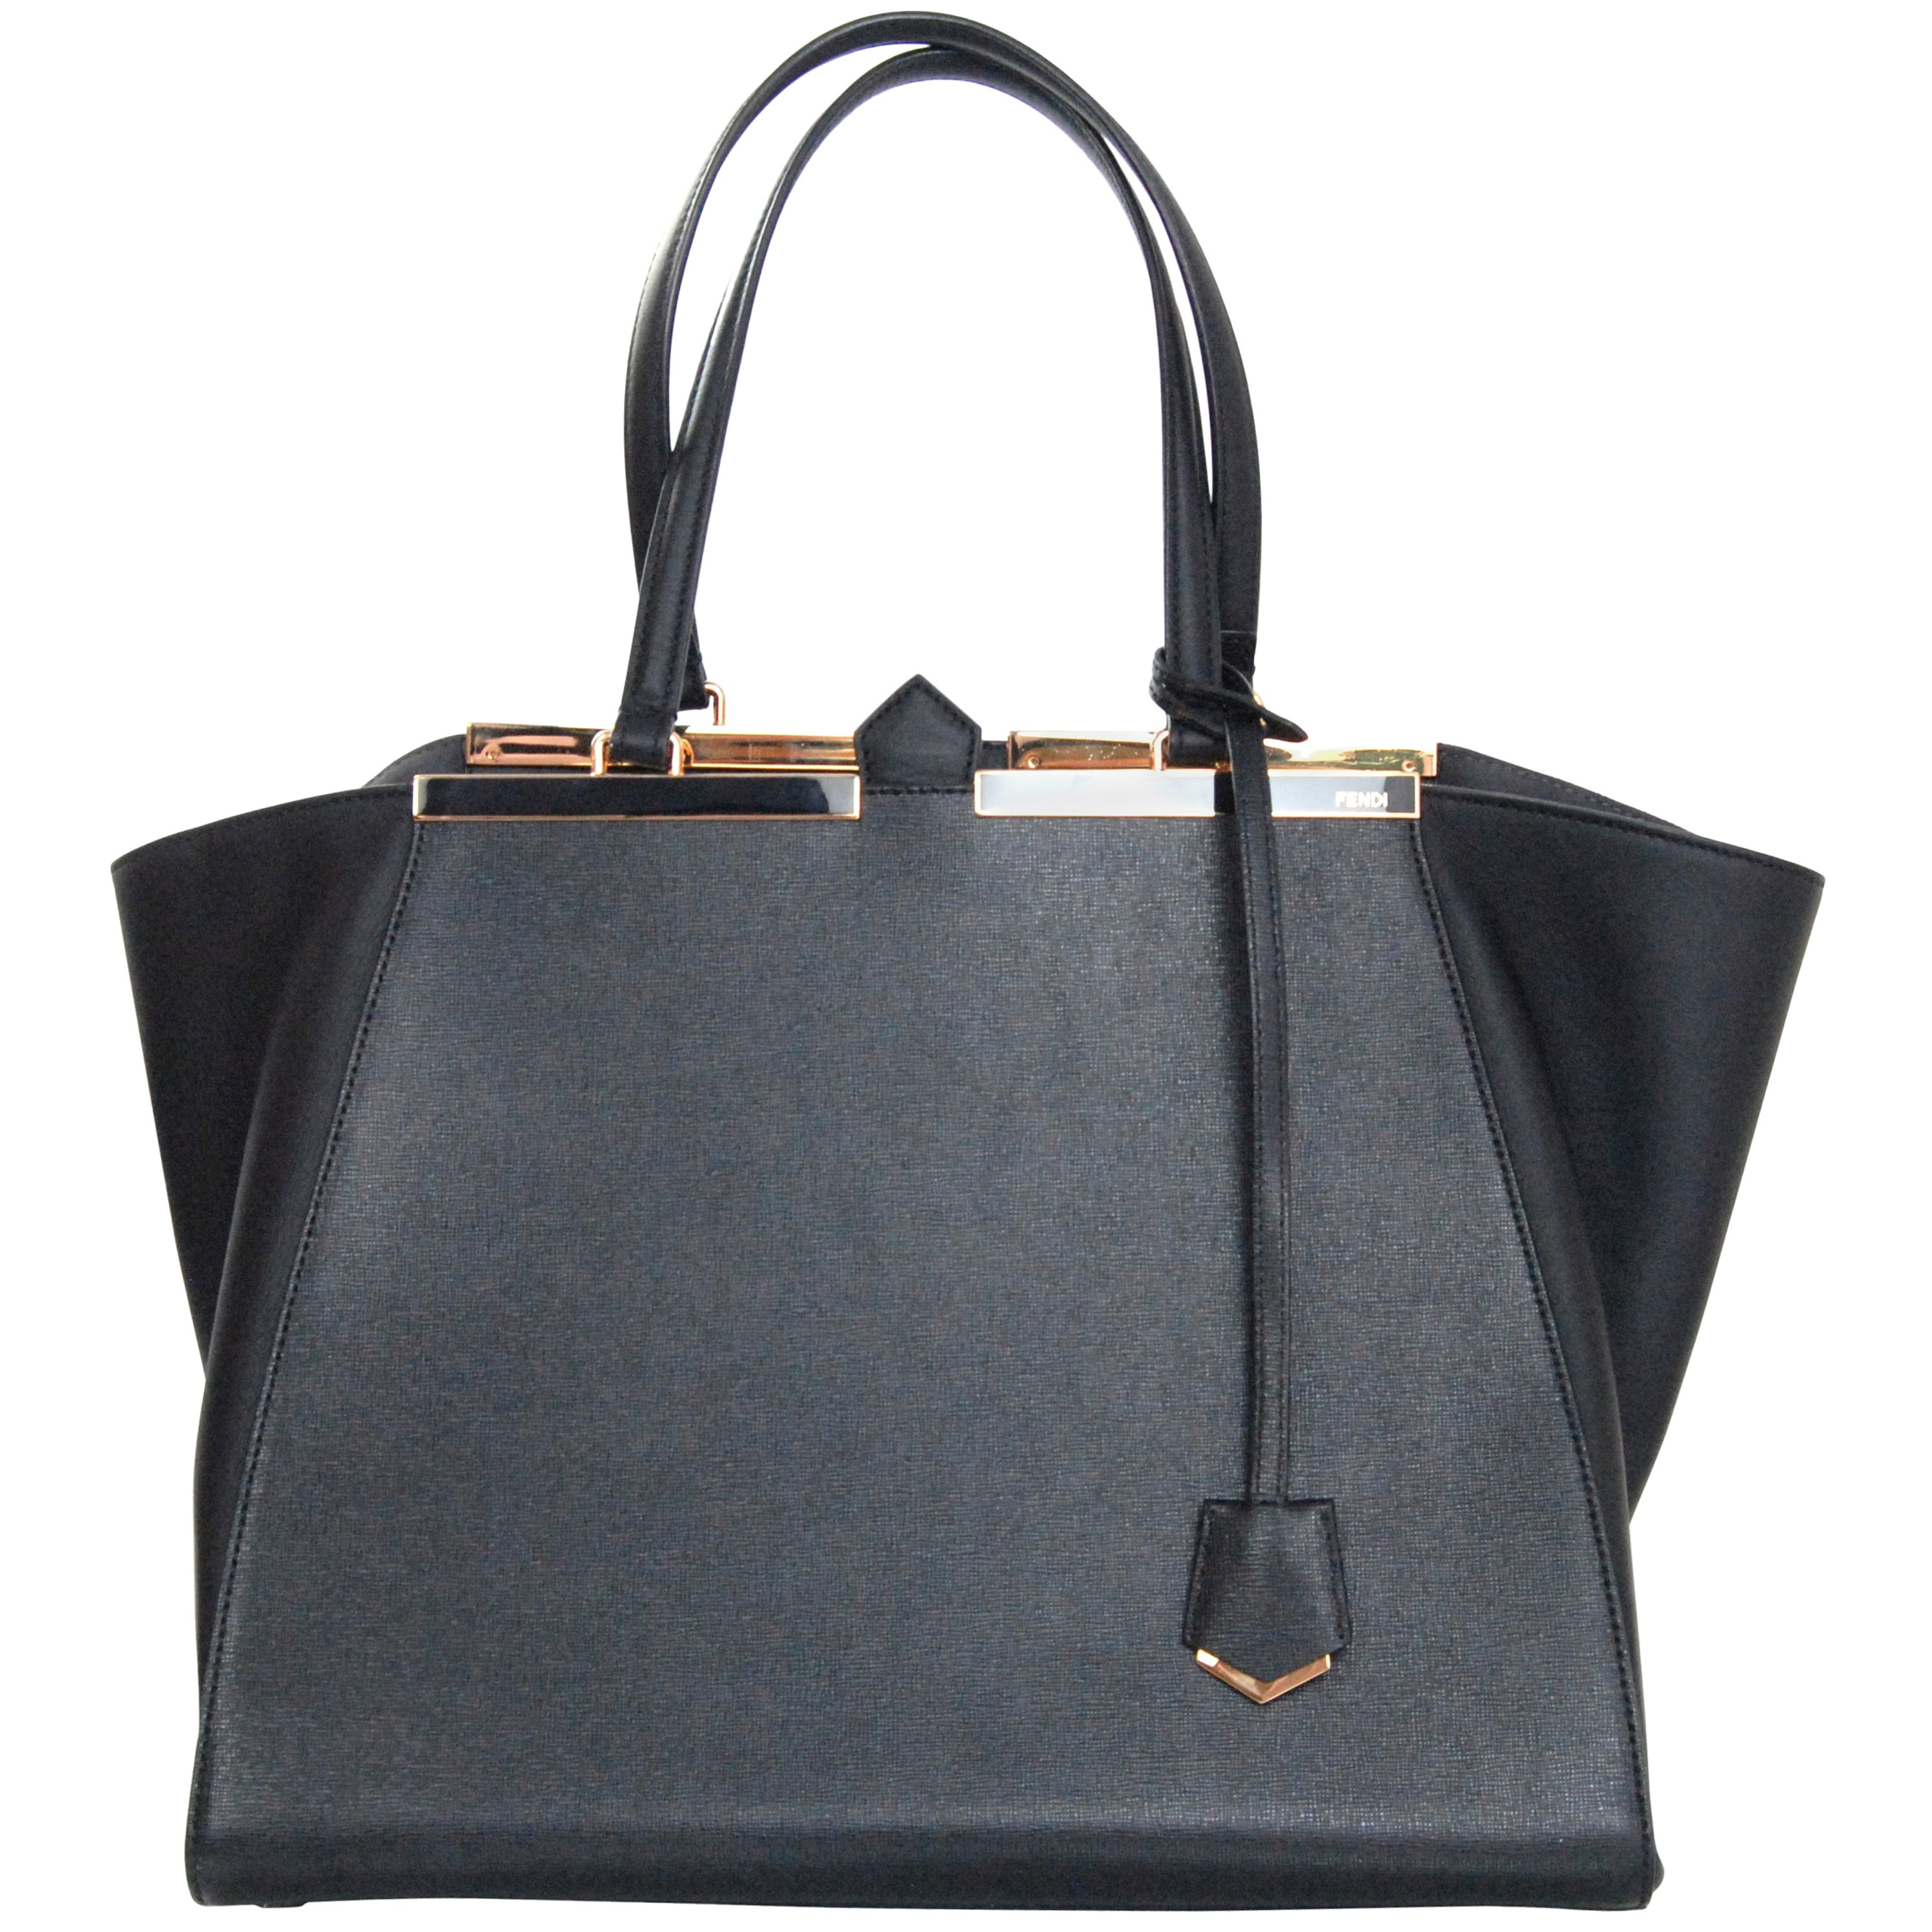 9f033c9b3b25 Fendi Black Textured Leather Medium 3Jours Tote Bag rt.  2